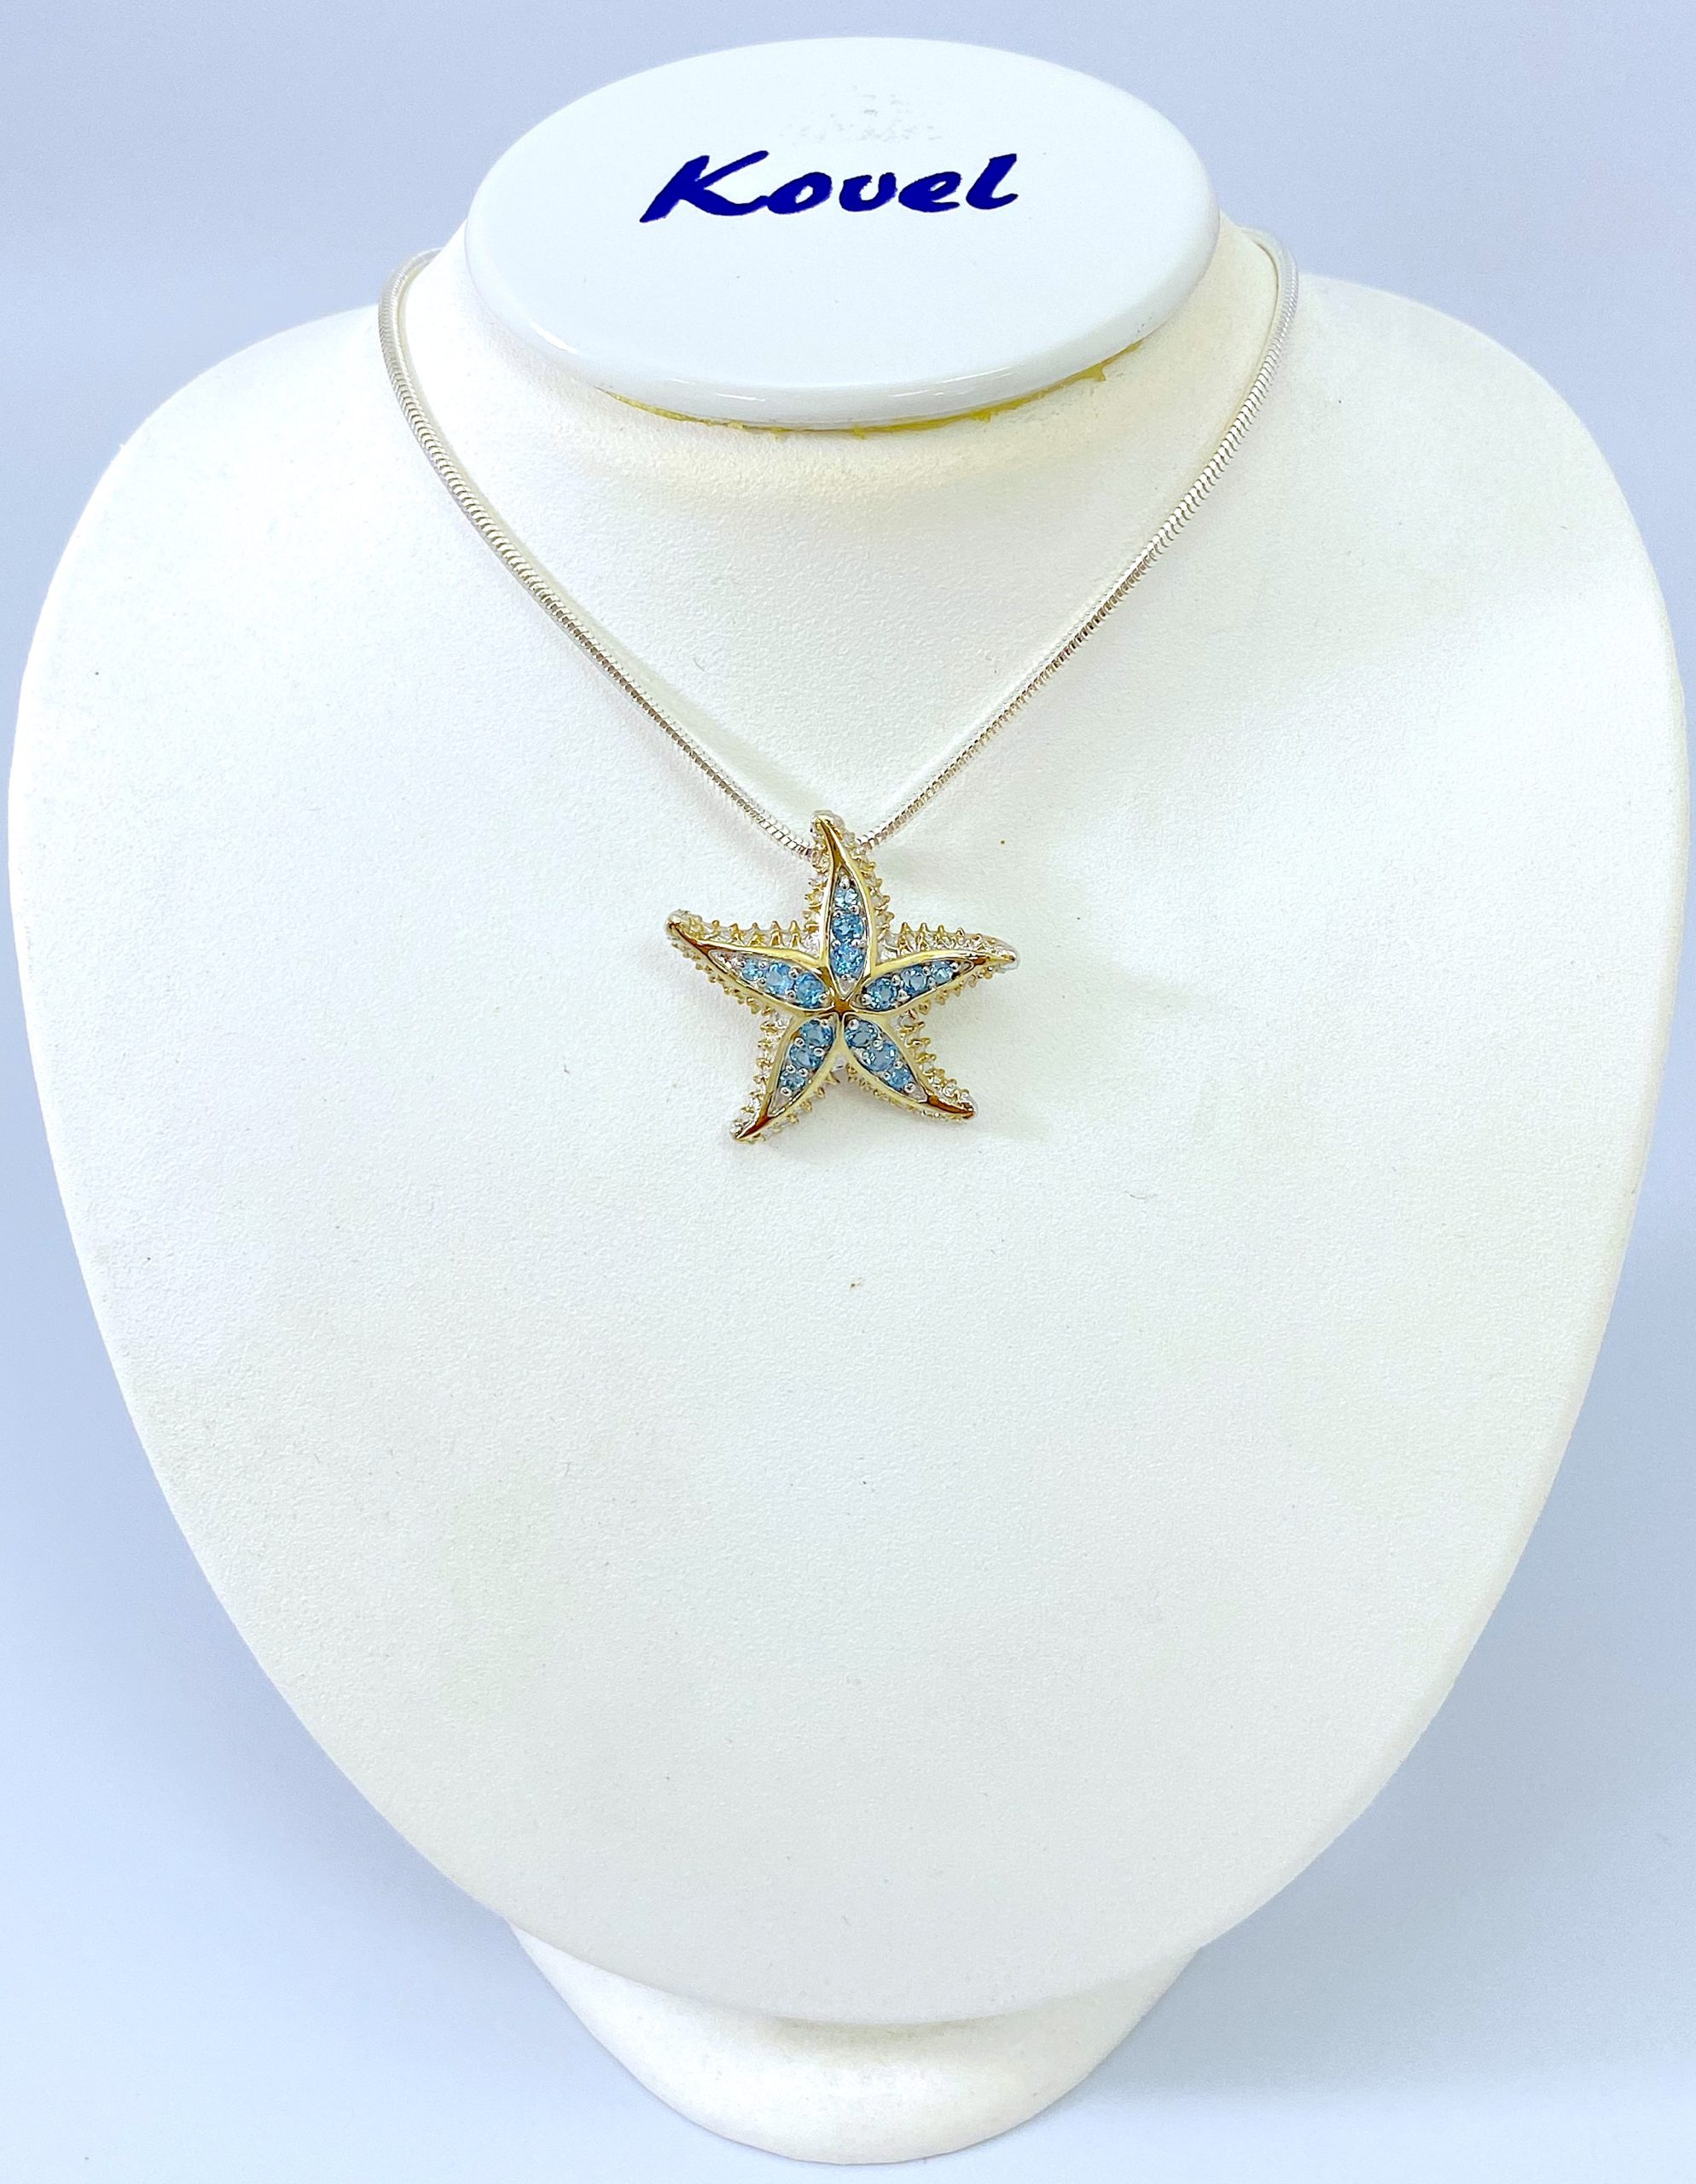 14K Opal Starfish Necklace  Gold Opal Starfish Necklace  Opal Starfish Pendant White Gold or Rose Gold Available in 14k Gold